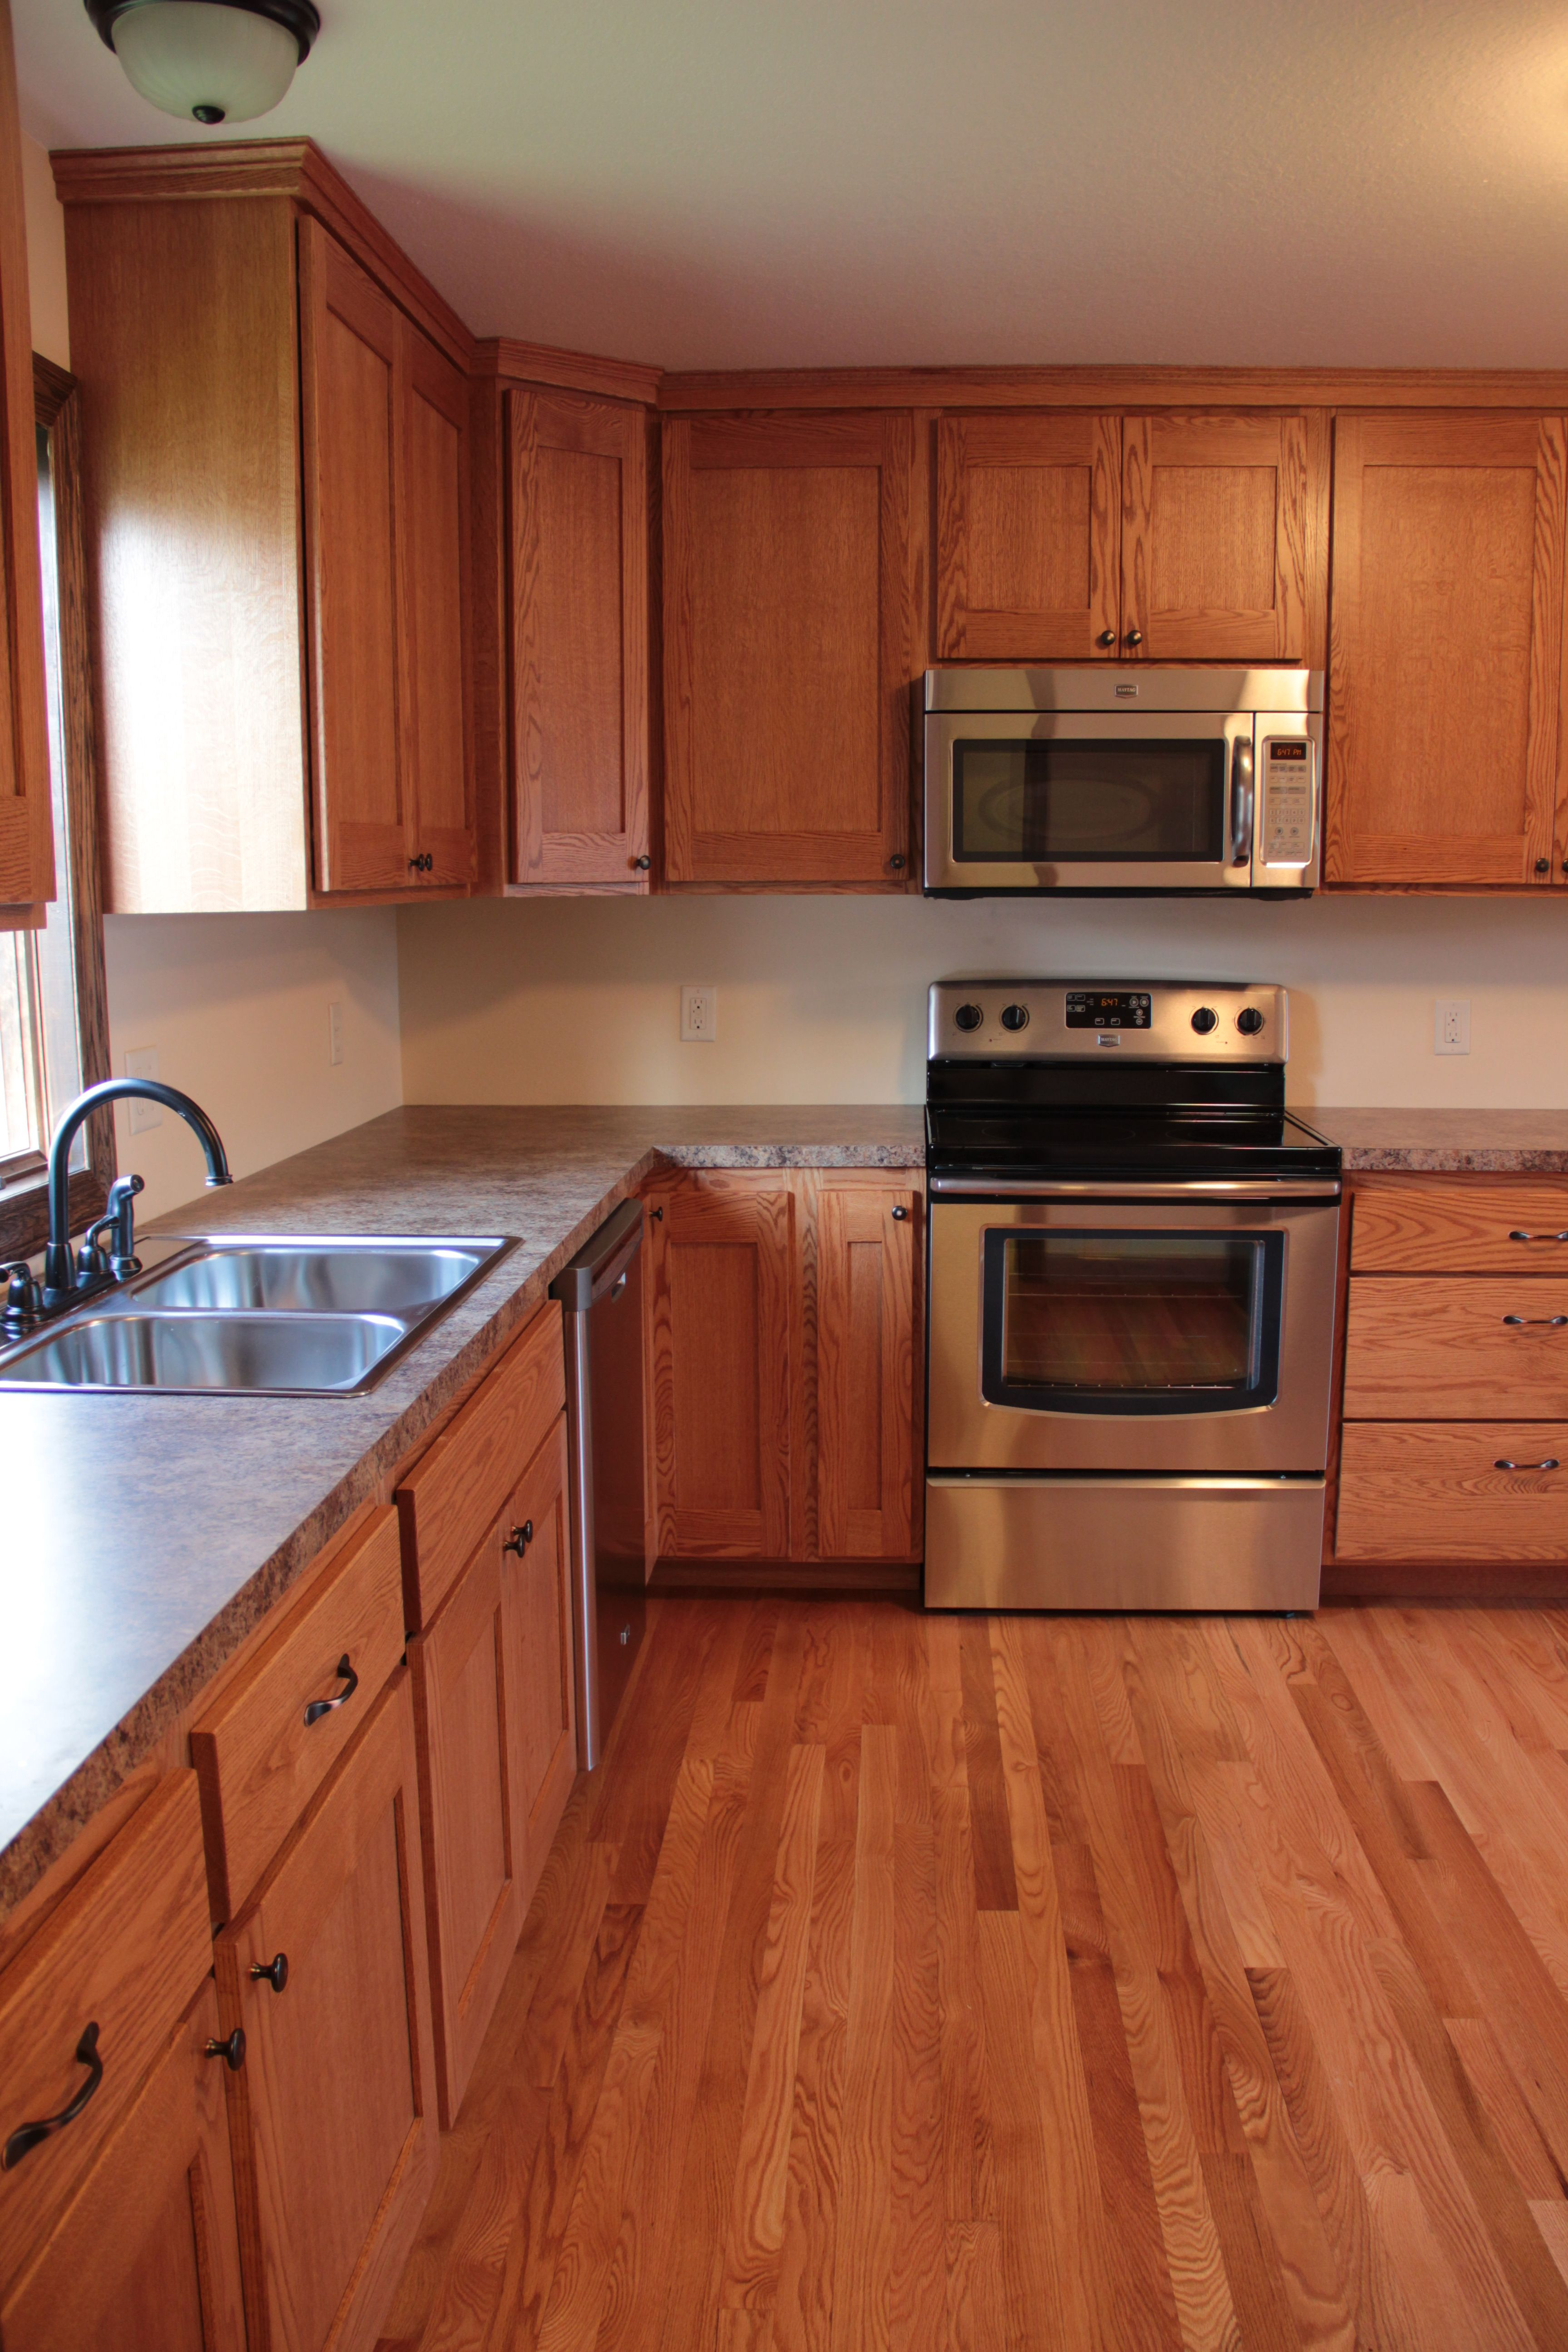 Early American Stain Kitchen Cabinets Red Oak Flooring Stain Options With Cherry Cabinets Nutmeg Antique Brown Early American Spice Nat Red Oak Floors Wood Floor Stain Colors Oak Floor Stains